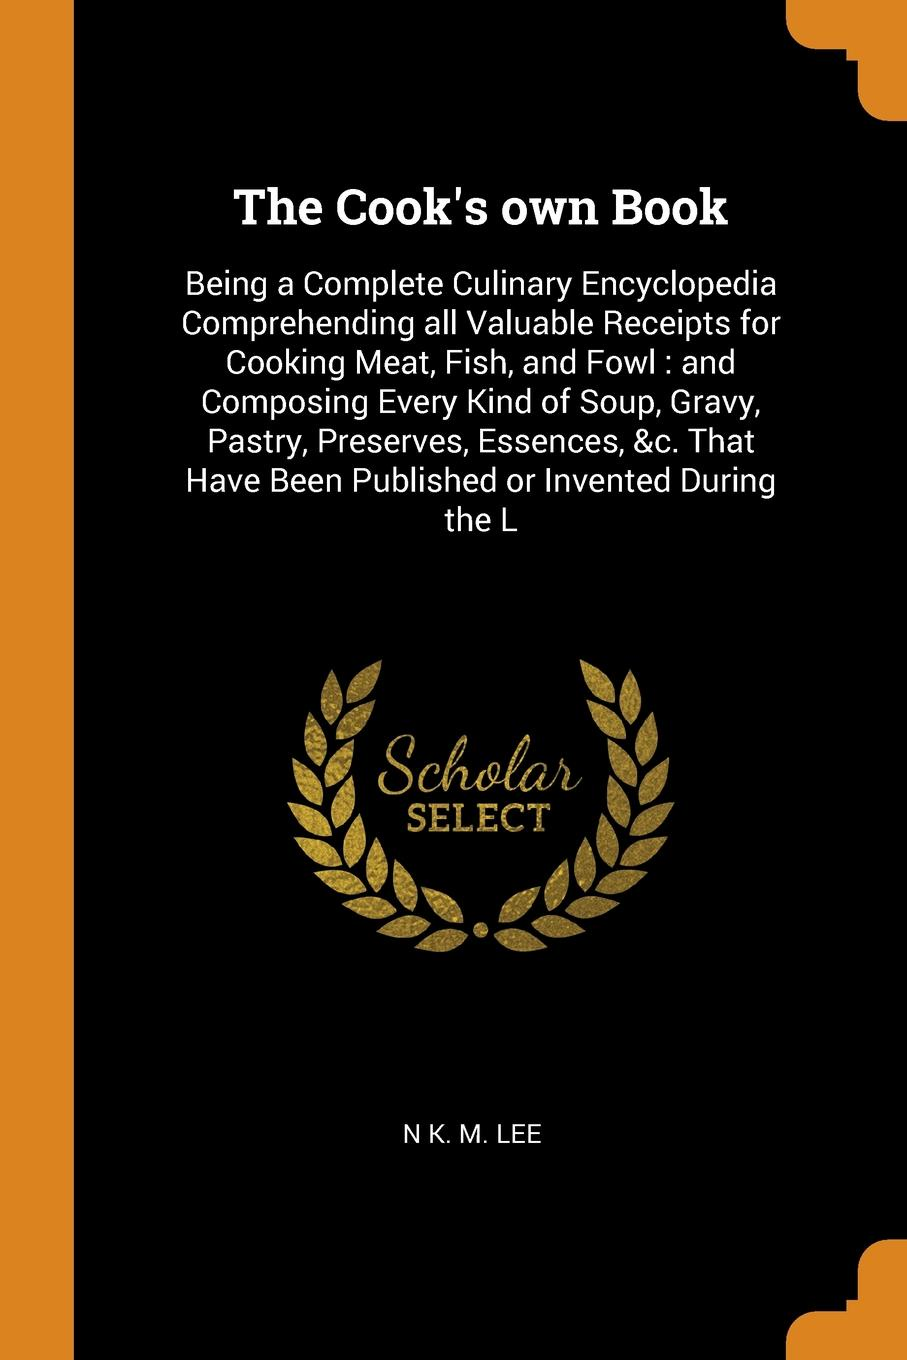 The Cook`s own Book. Being a Complete Culinary Encyclopedia Comprehending all Valuable Receipts for Cooking Meat, Fish, and Fowl : and Composing Every Kind of Soup, Gravy, Pastry, Preserves, Essences, &c. That Have Been Published or Invented Durin...